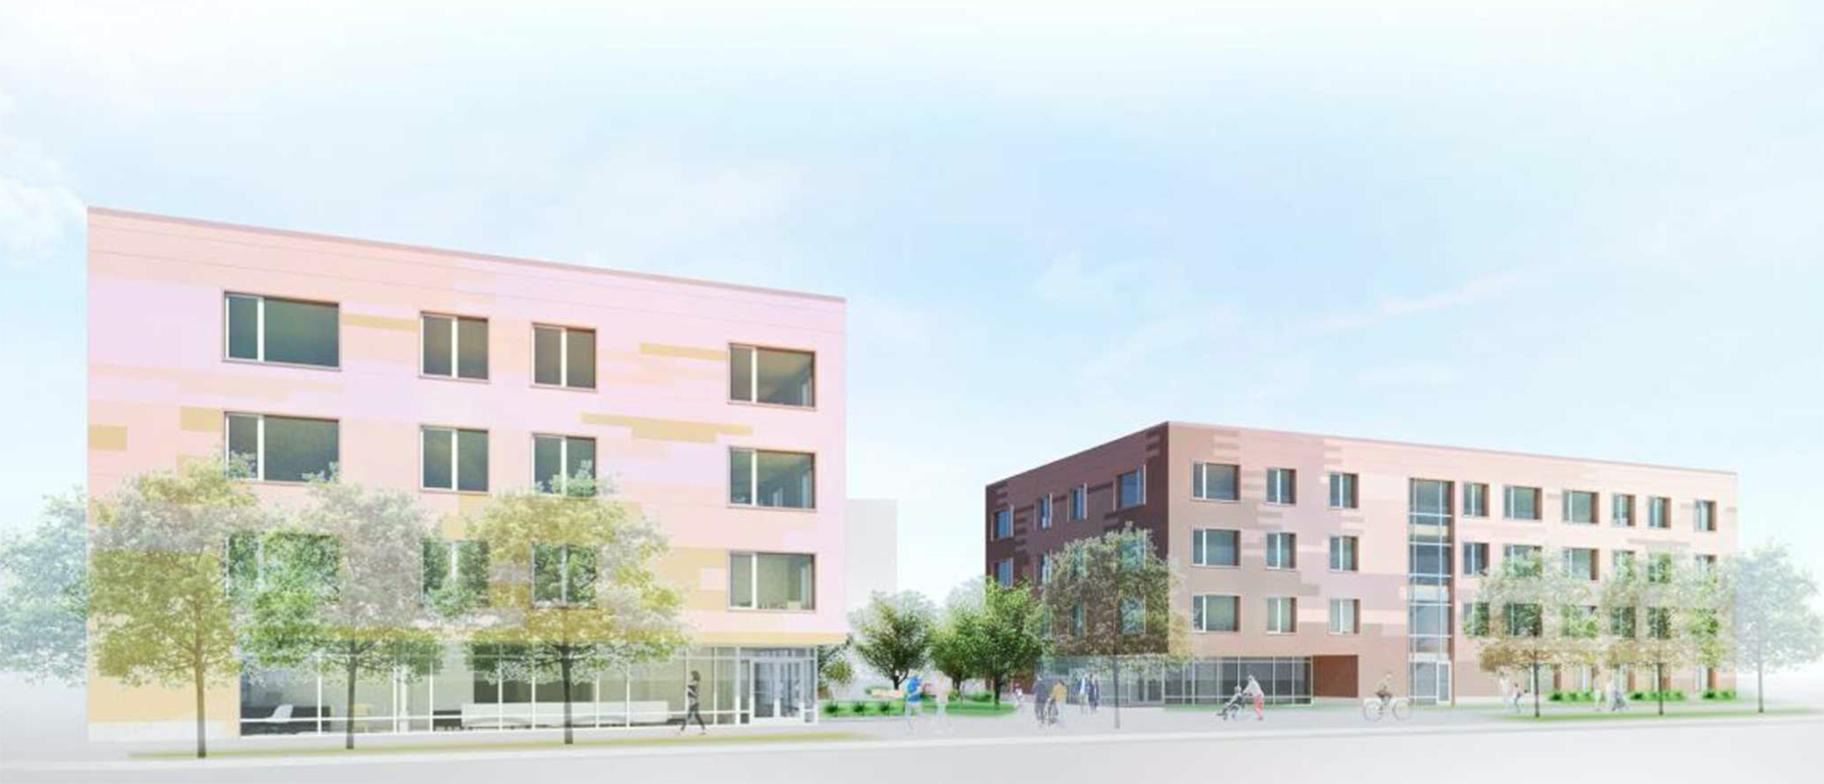 A rendering of the proposed apartment complex near Lawrence and Austin avenues in Jefferson Park. (Credit: Canopy Chicago)